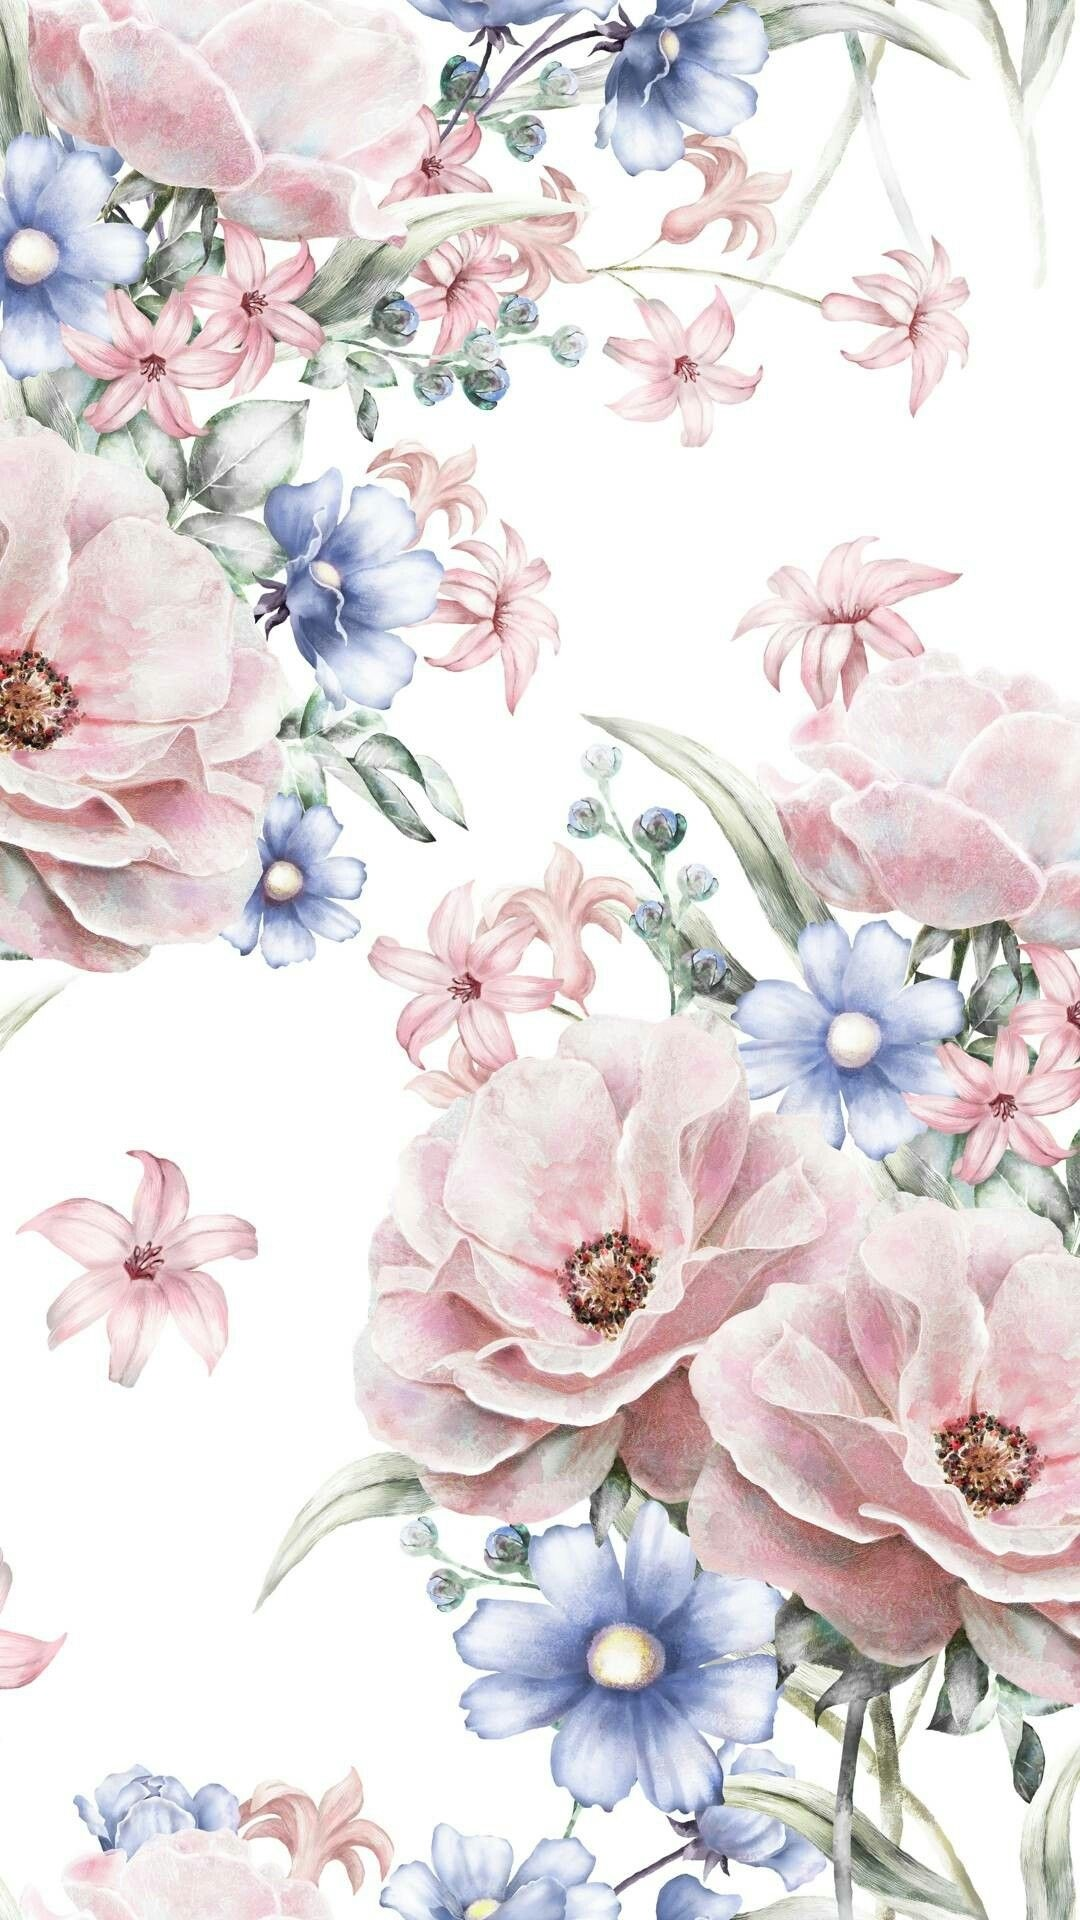 Floral iphone wallpaper high quality